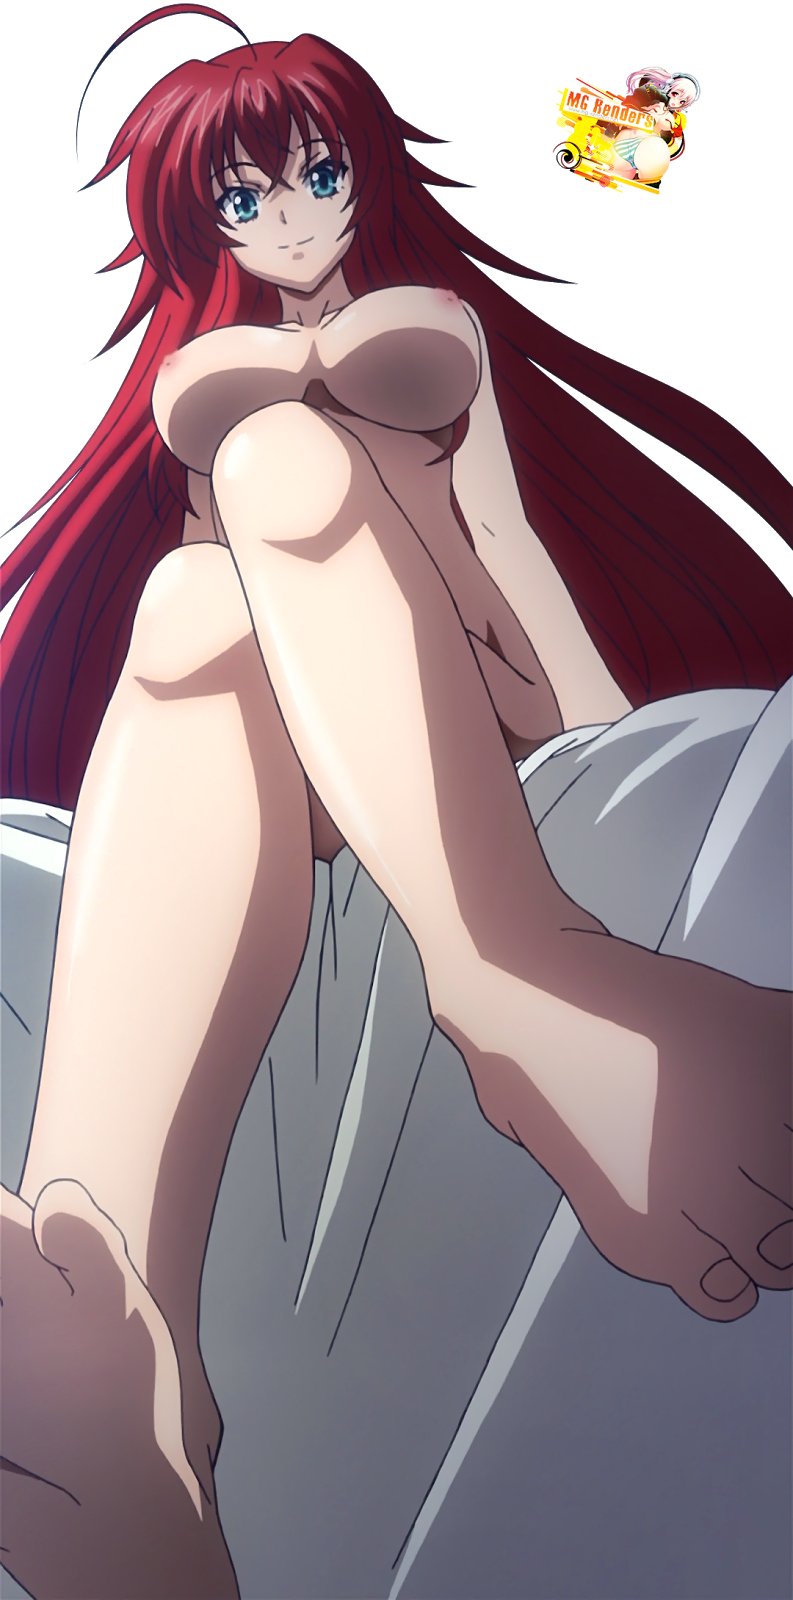 High School DxD - Rias Gremory Render 56 Ecchi Hentai Naked Feet Large ...